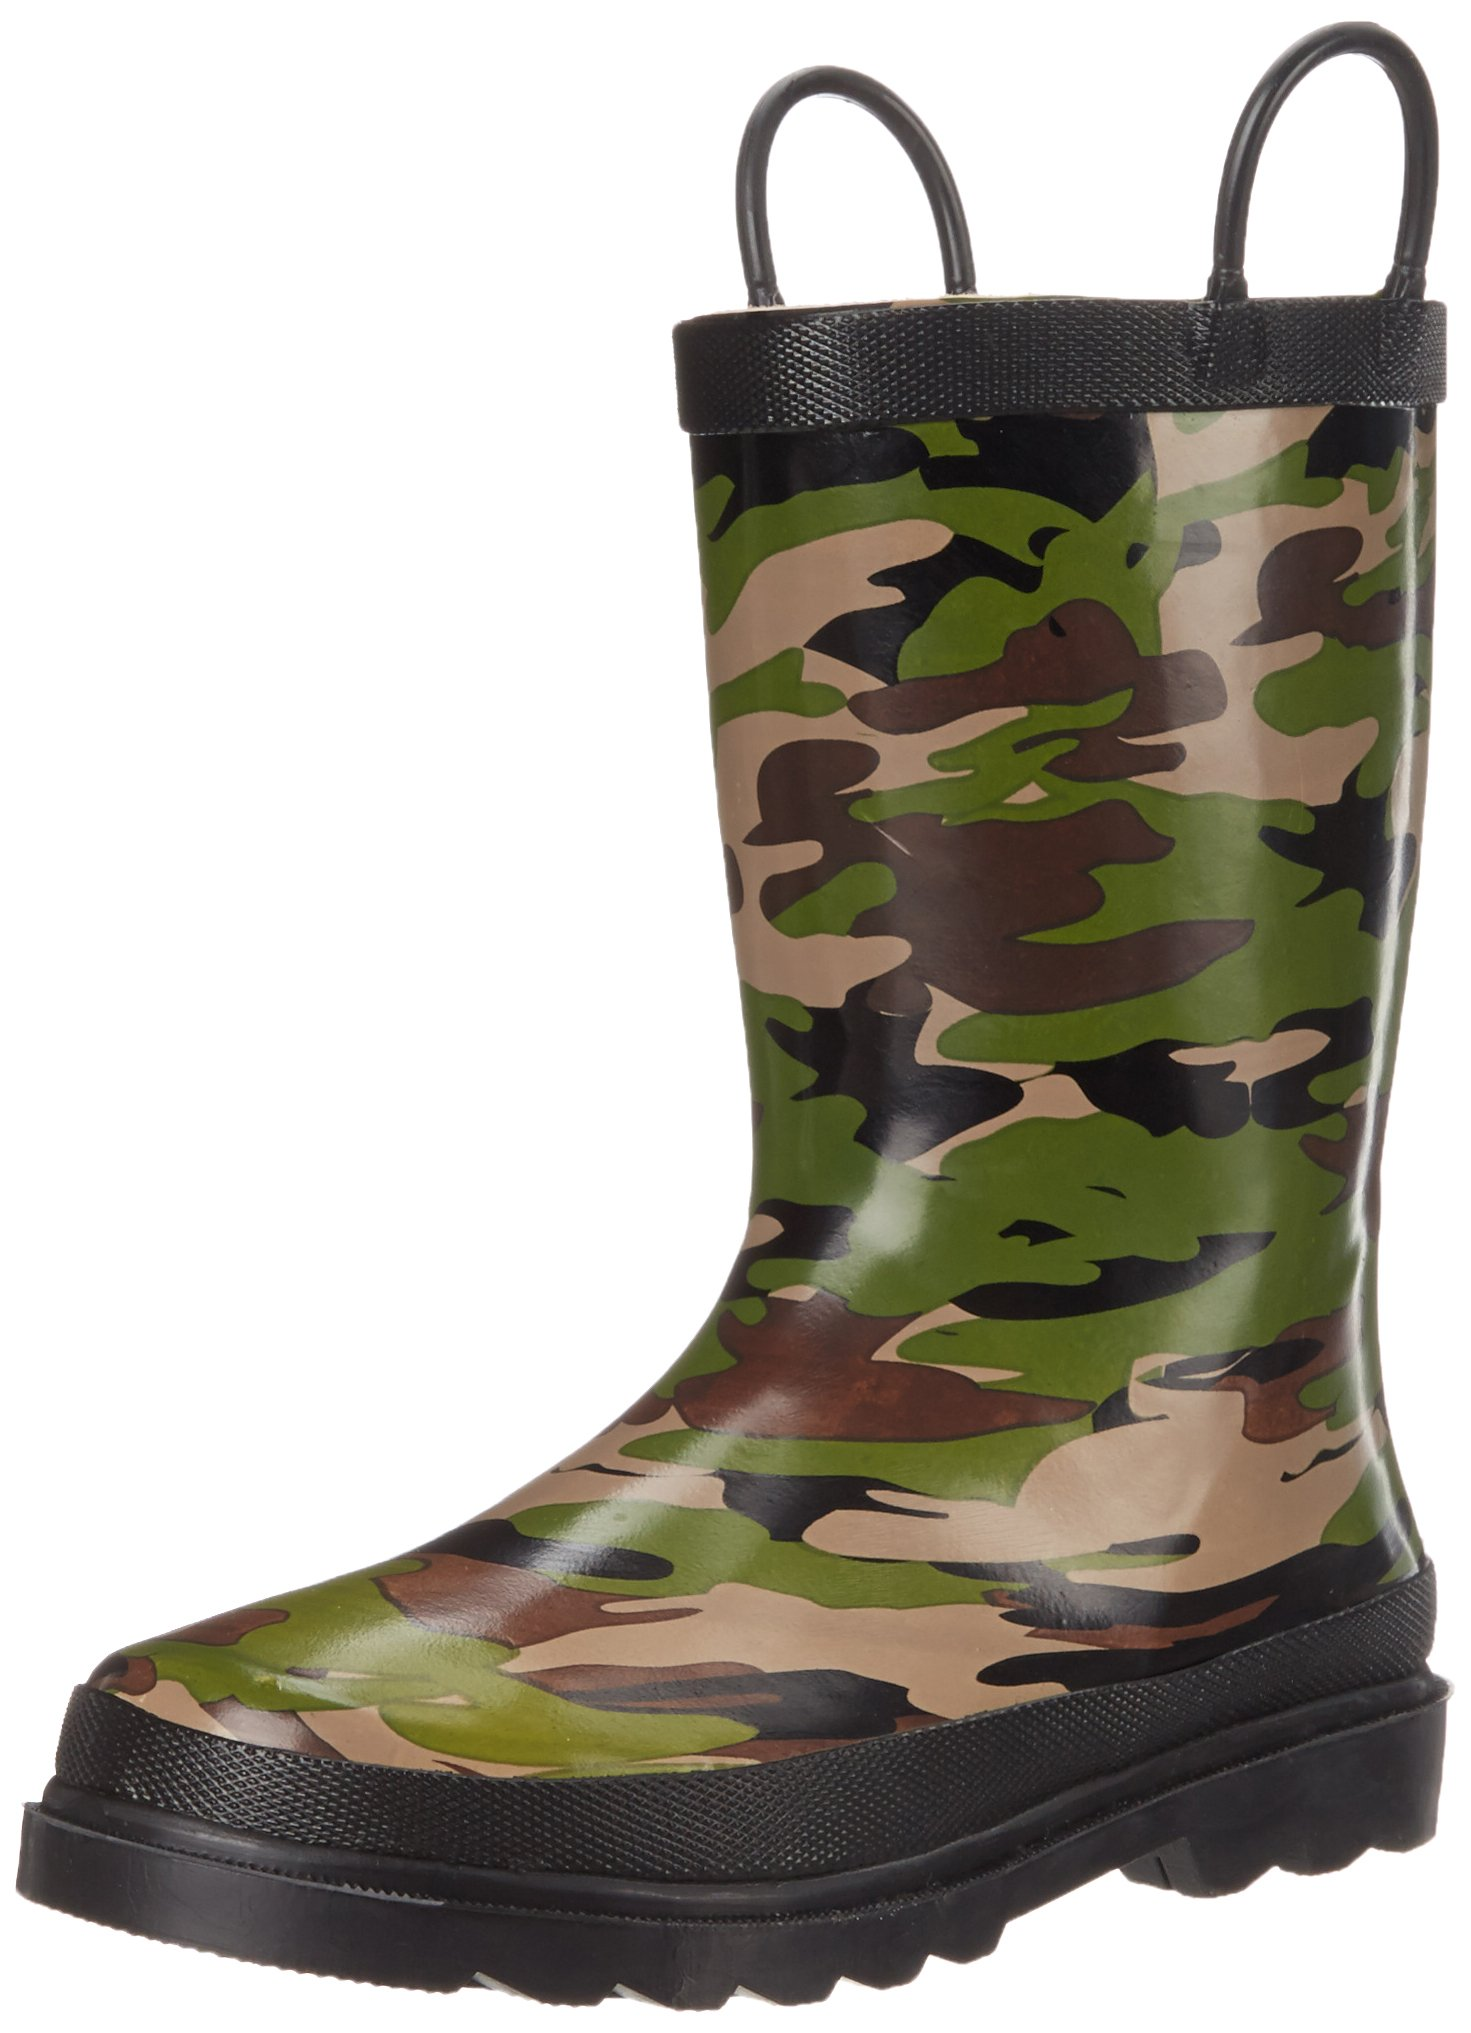 Western Chief Boys Waterproof Printed Rain Boot with Easy Pull On Handles, Camo, 1 M US Little Kid